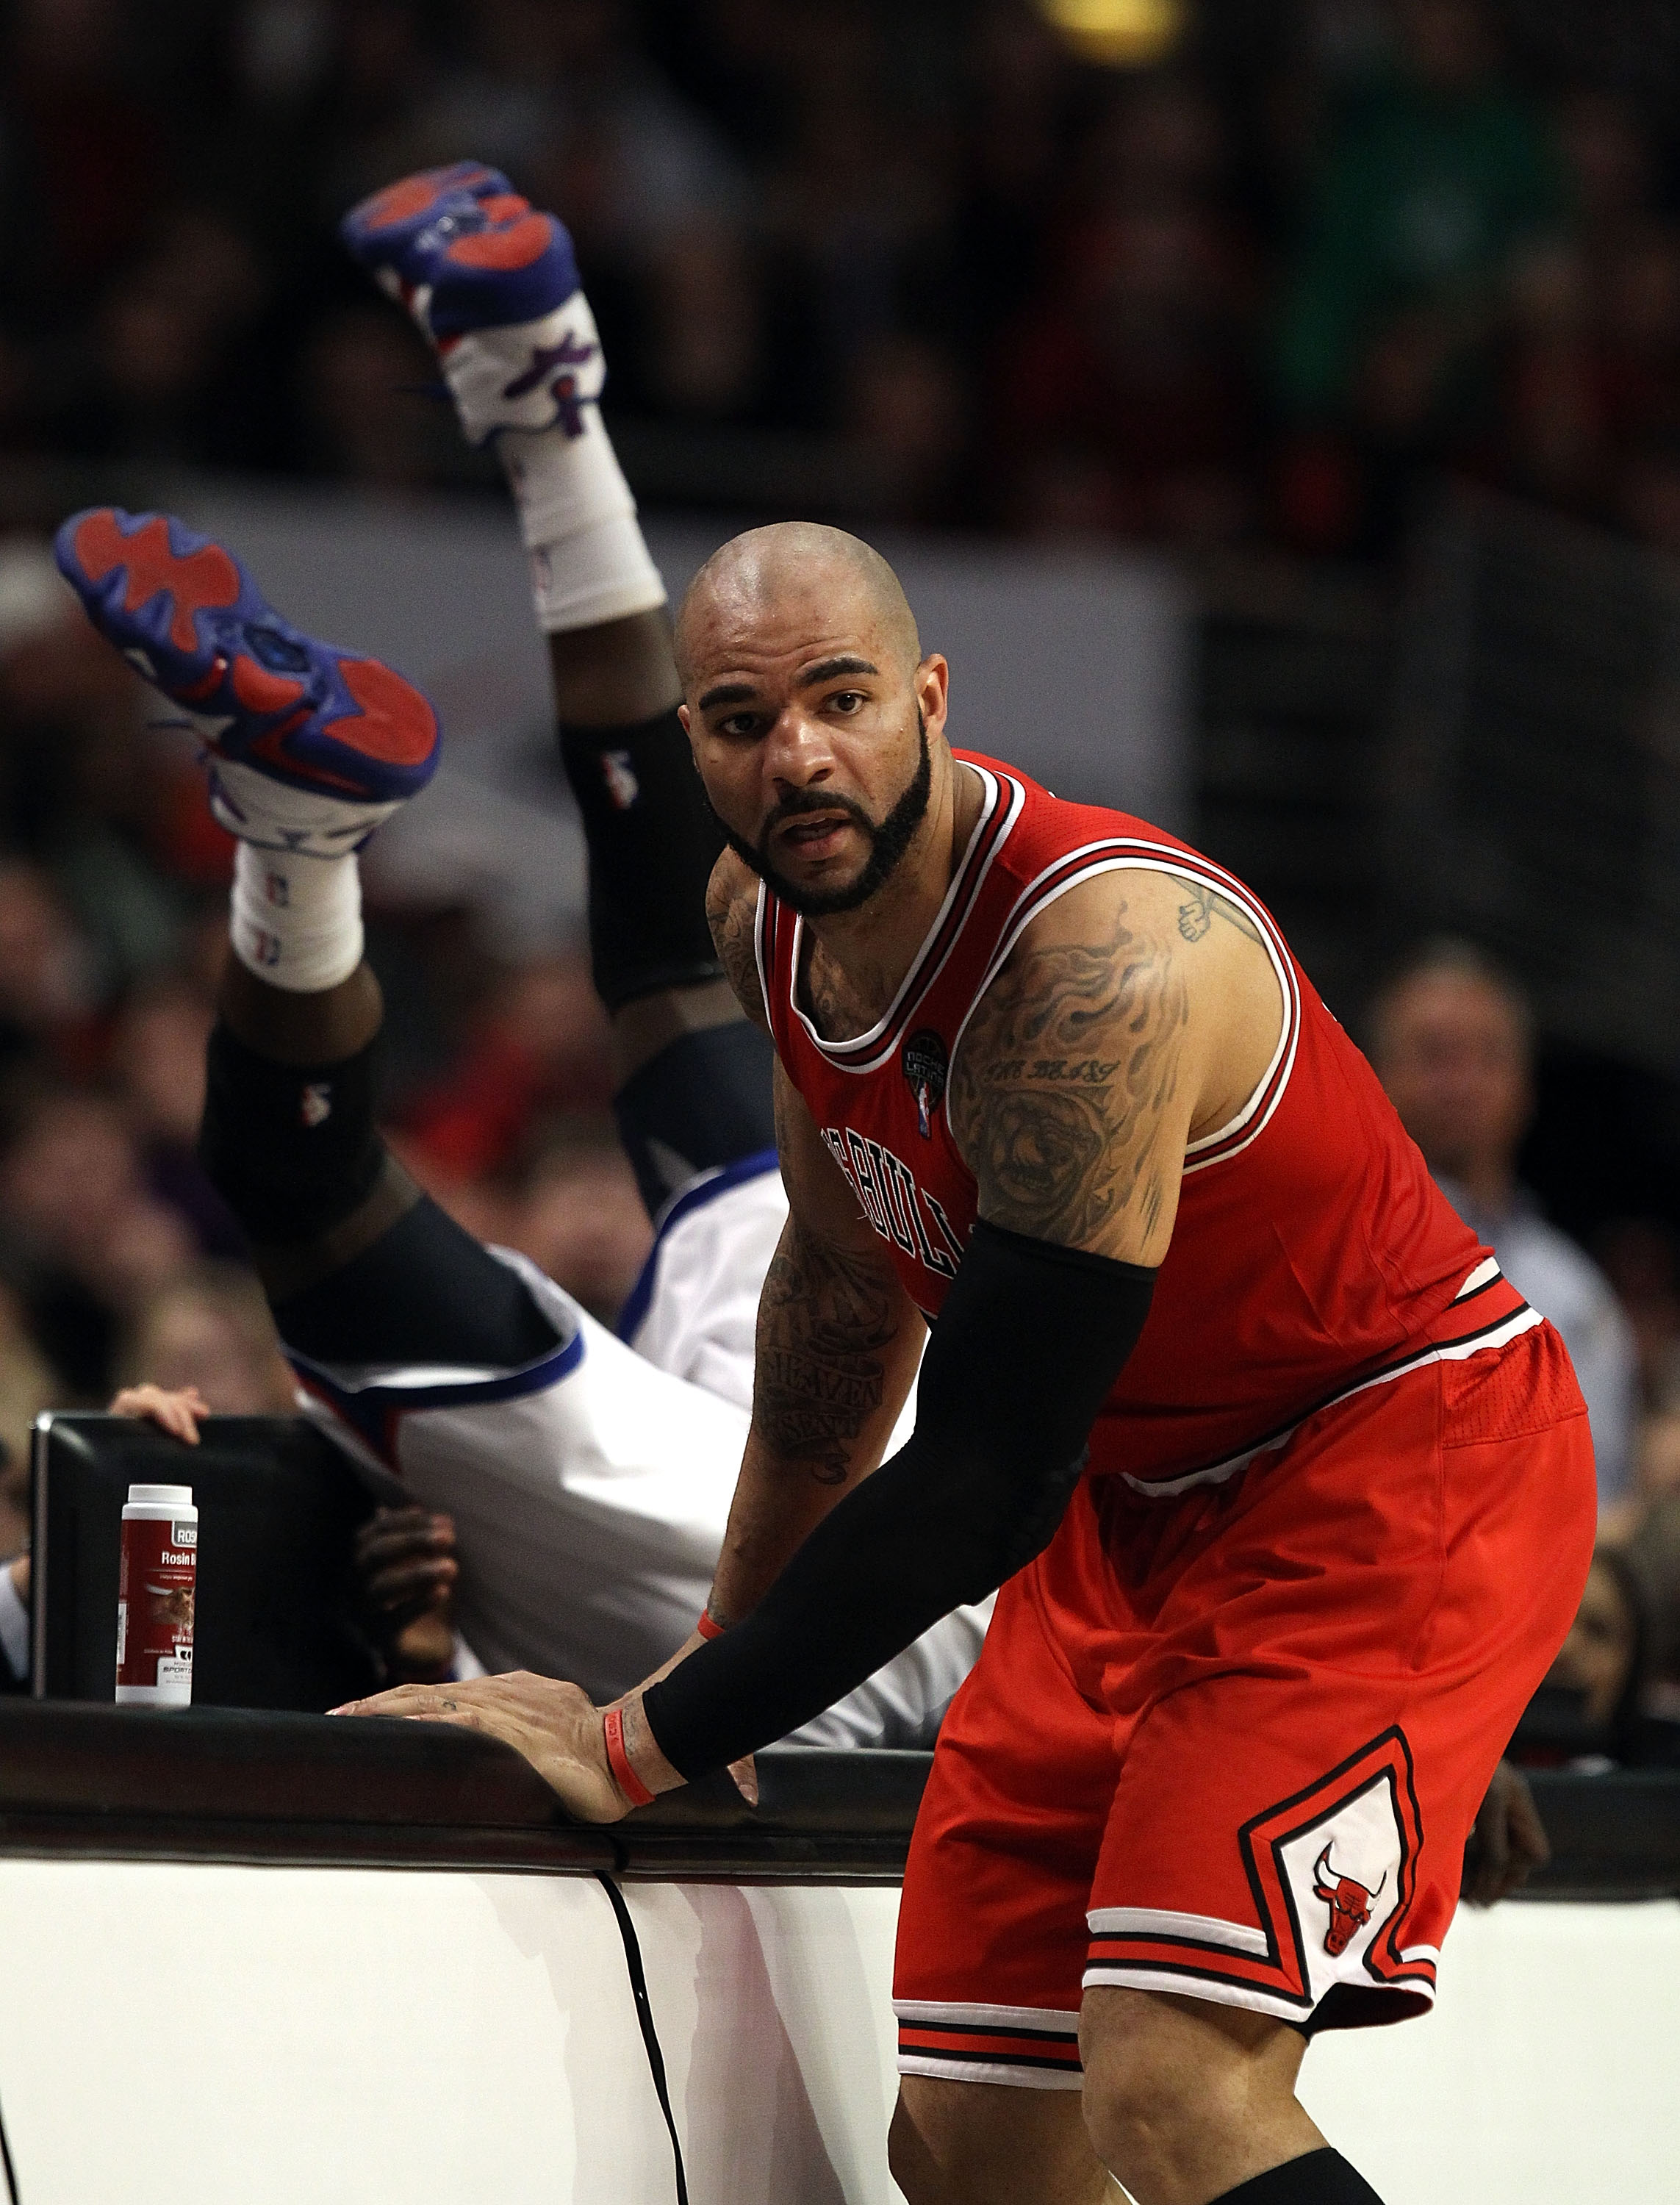 CHICAGO, IL - MARCH 28: Carlos Boozer #5 of the Chicago Bulls stops at the scorer's table as Jrue Holiday #11 of the Philadelphia 76ers flips over the edge at the United Center on March 28, 2011 in Chicago, Illinois. The 76ers defeated the Bulls 97-85. NO